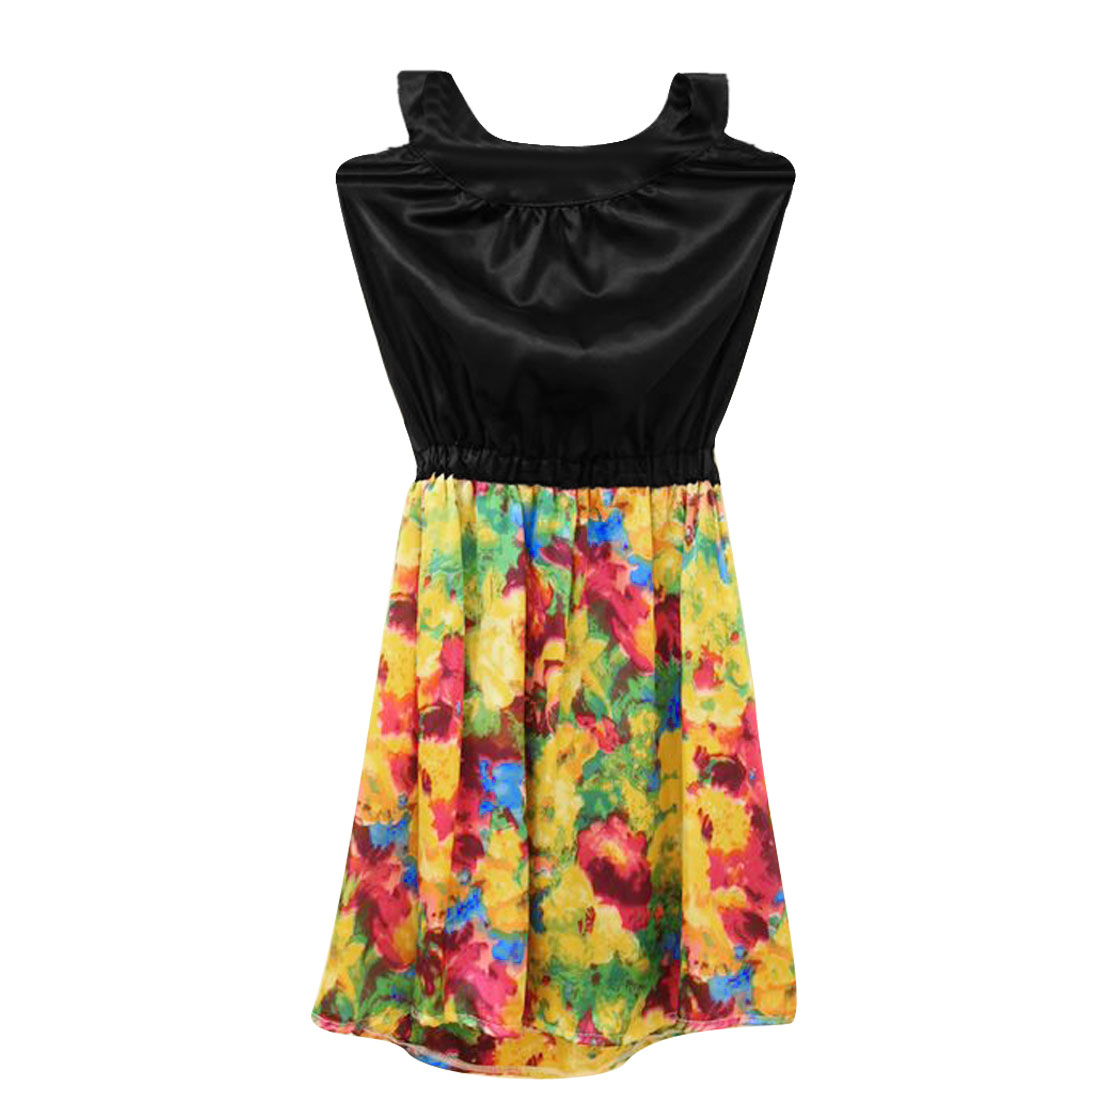 Ladies Summer Backless Floral Printed Multicolor Sexy Dress XS